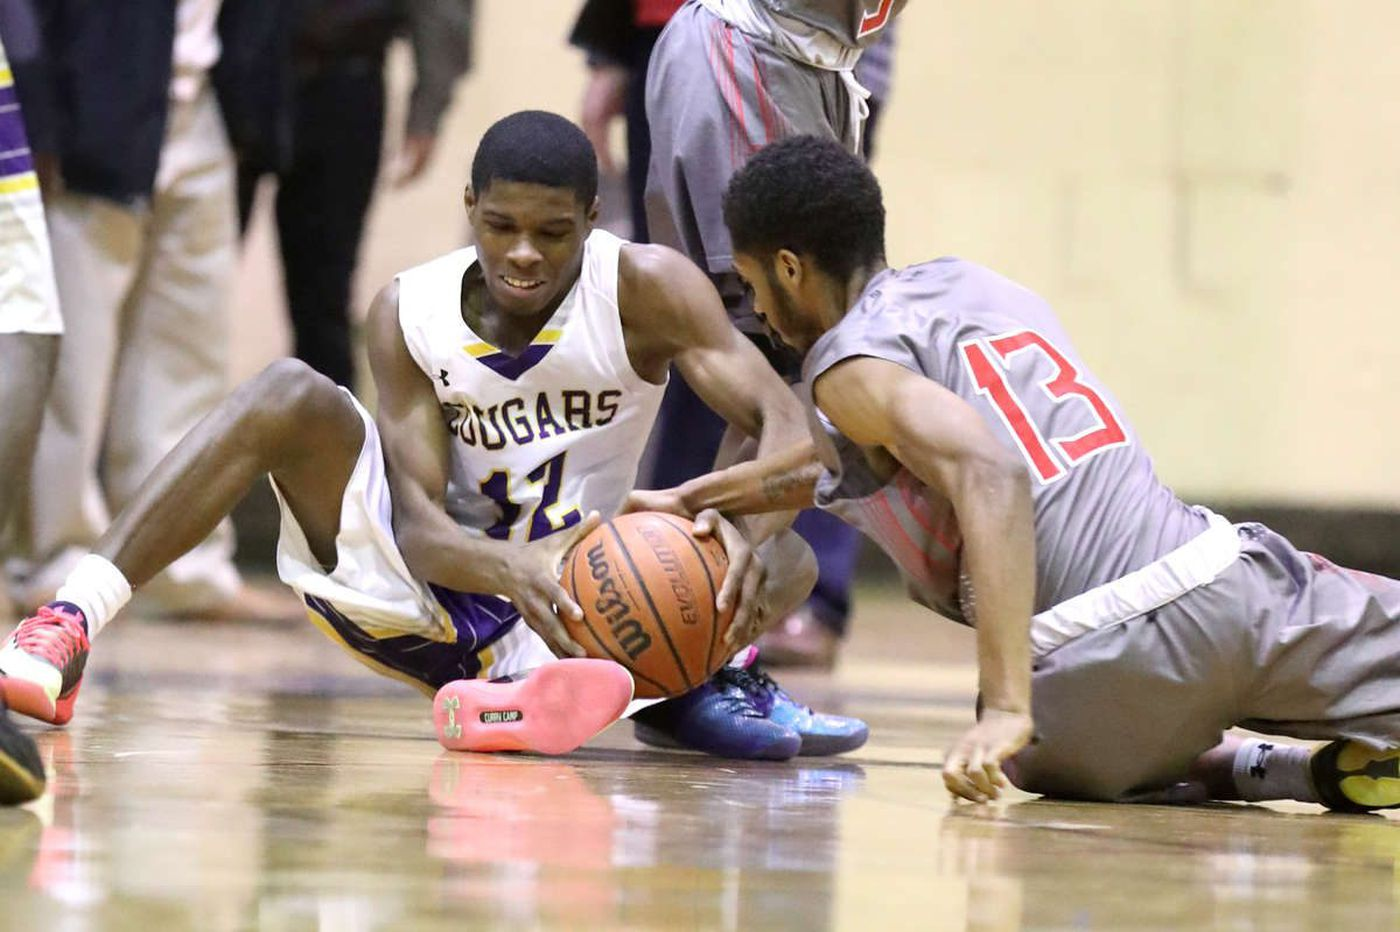 Stingy defense helped Imhotep knock out Martin Luther King High